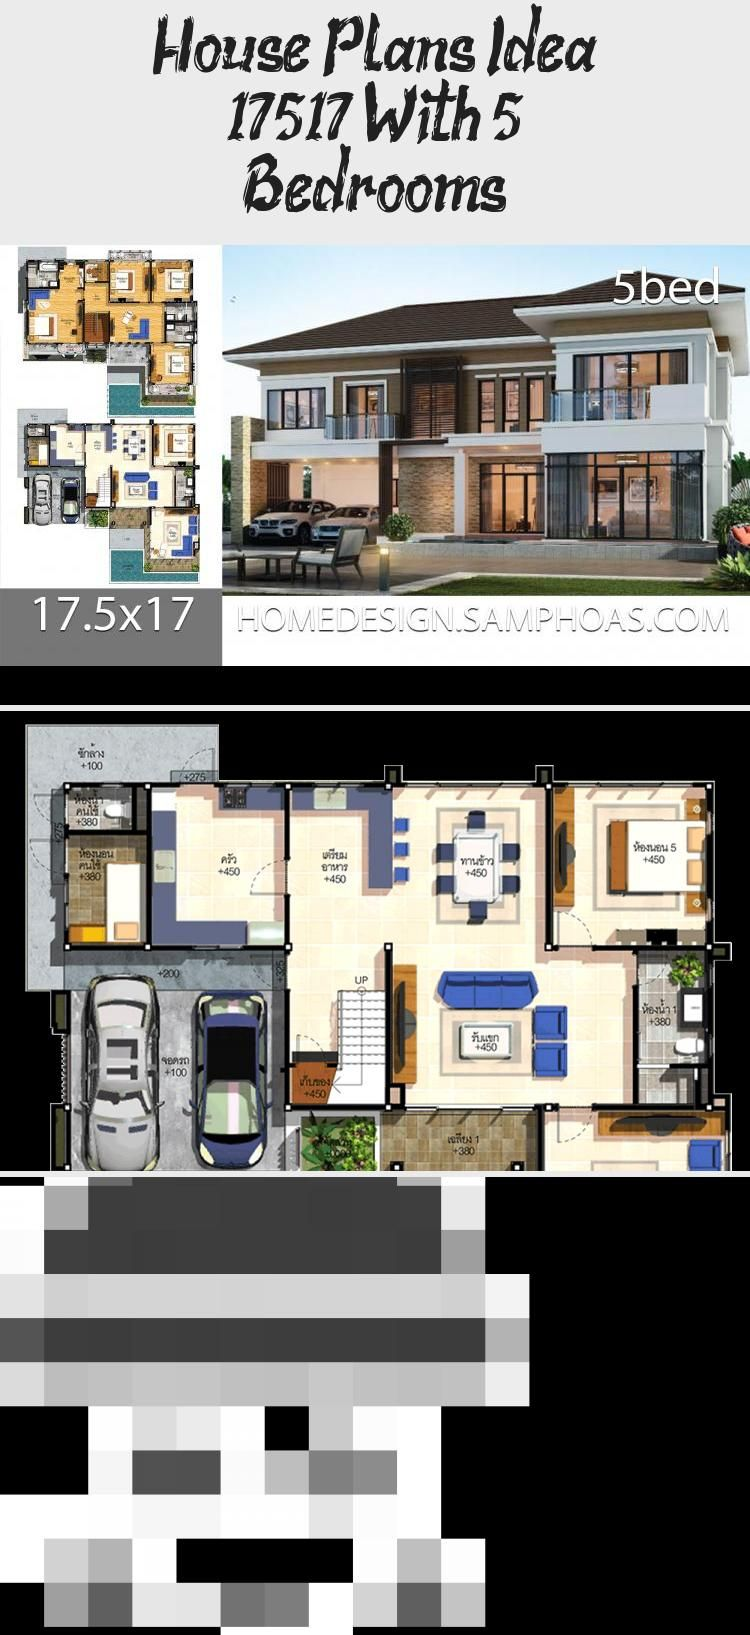 House Plans Idea 17 5 17 With 5 Bedrooms In 2020 House Plans Modern House Plans Modern House Plans Open Floor